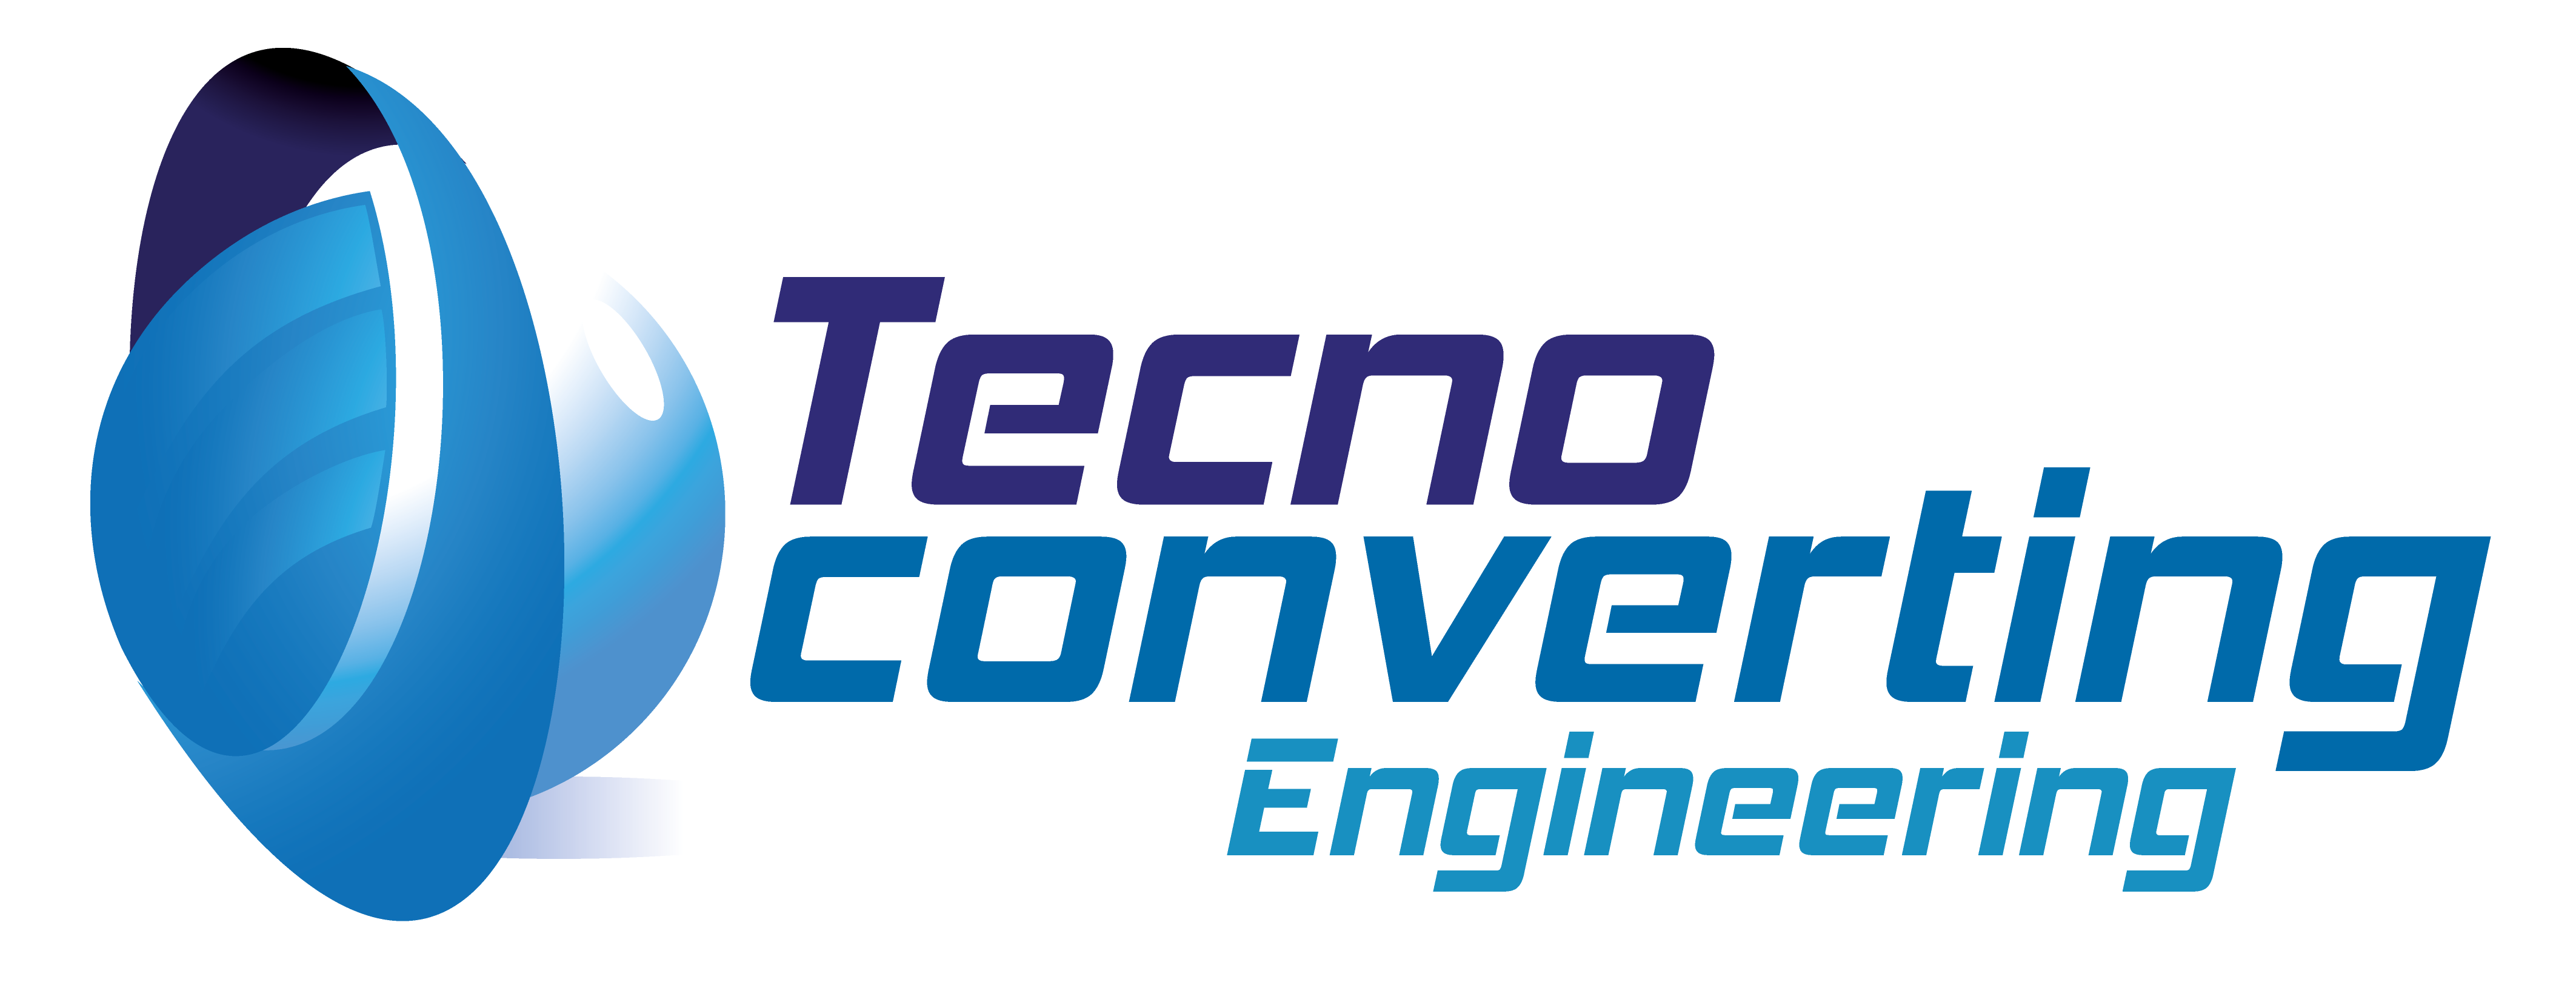 TecnoConverting Engineering